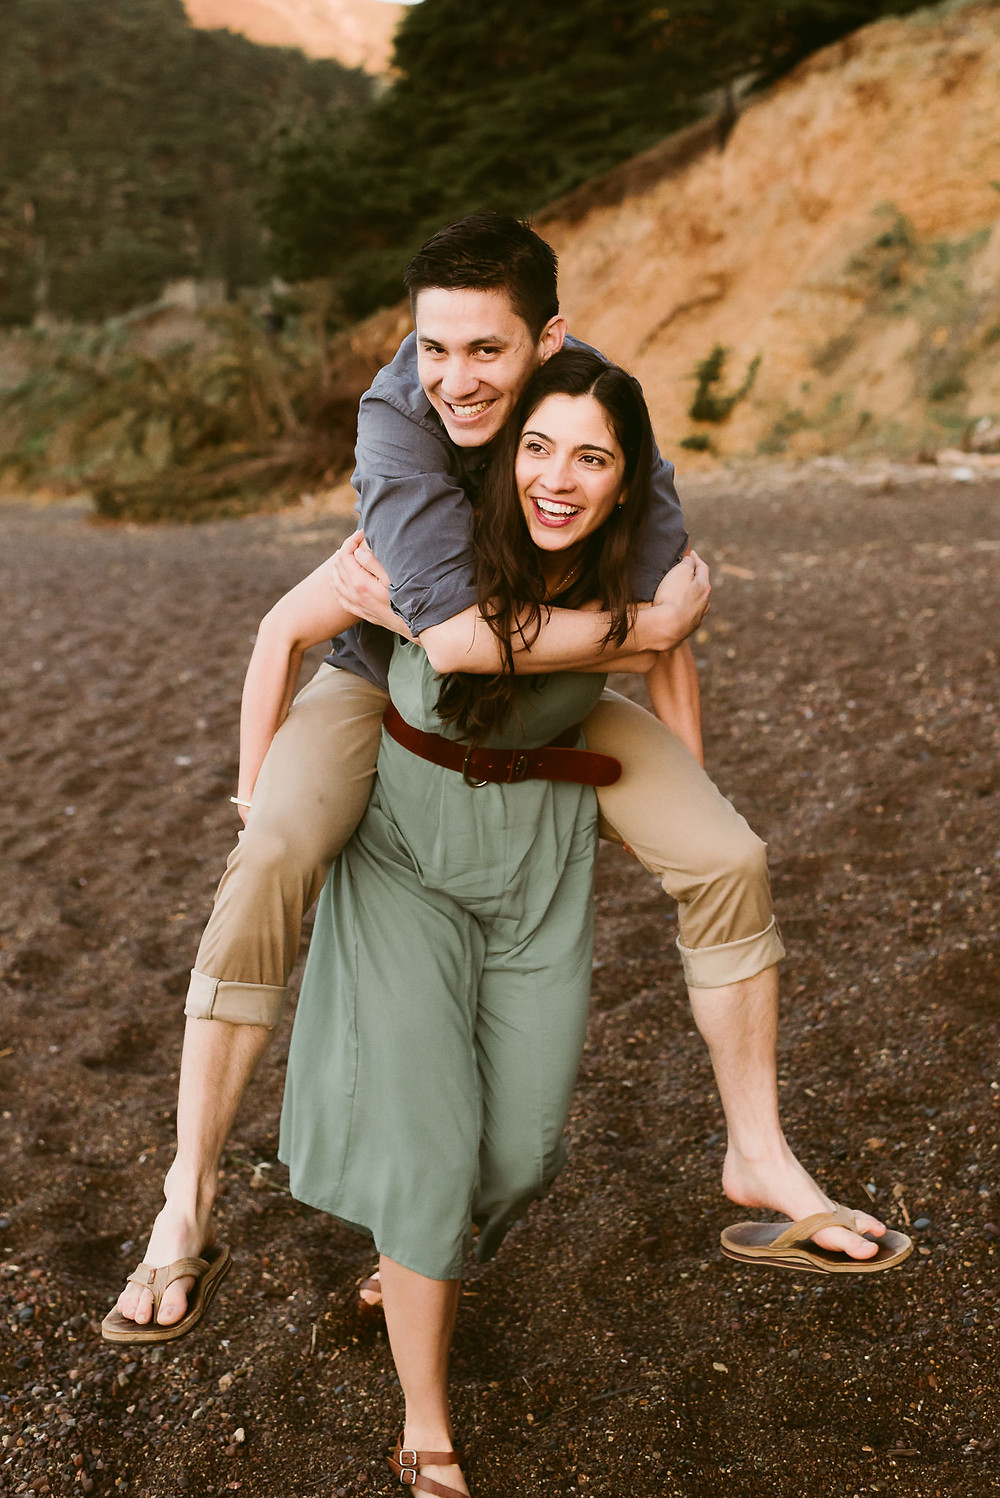 Sunrise engagement session at Kirby Cove | San Francisco Elopement Photographer